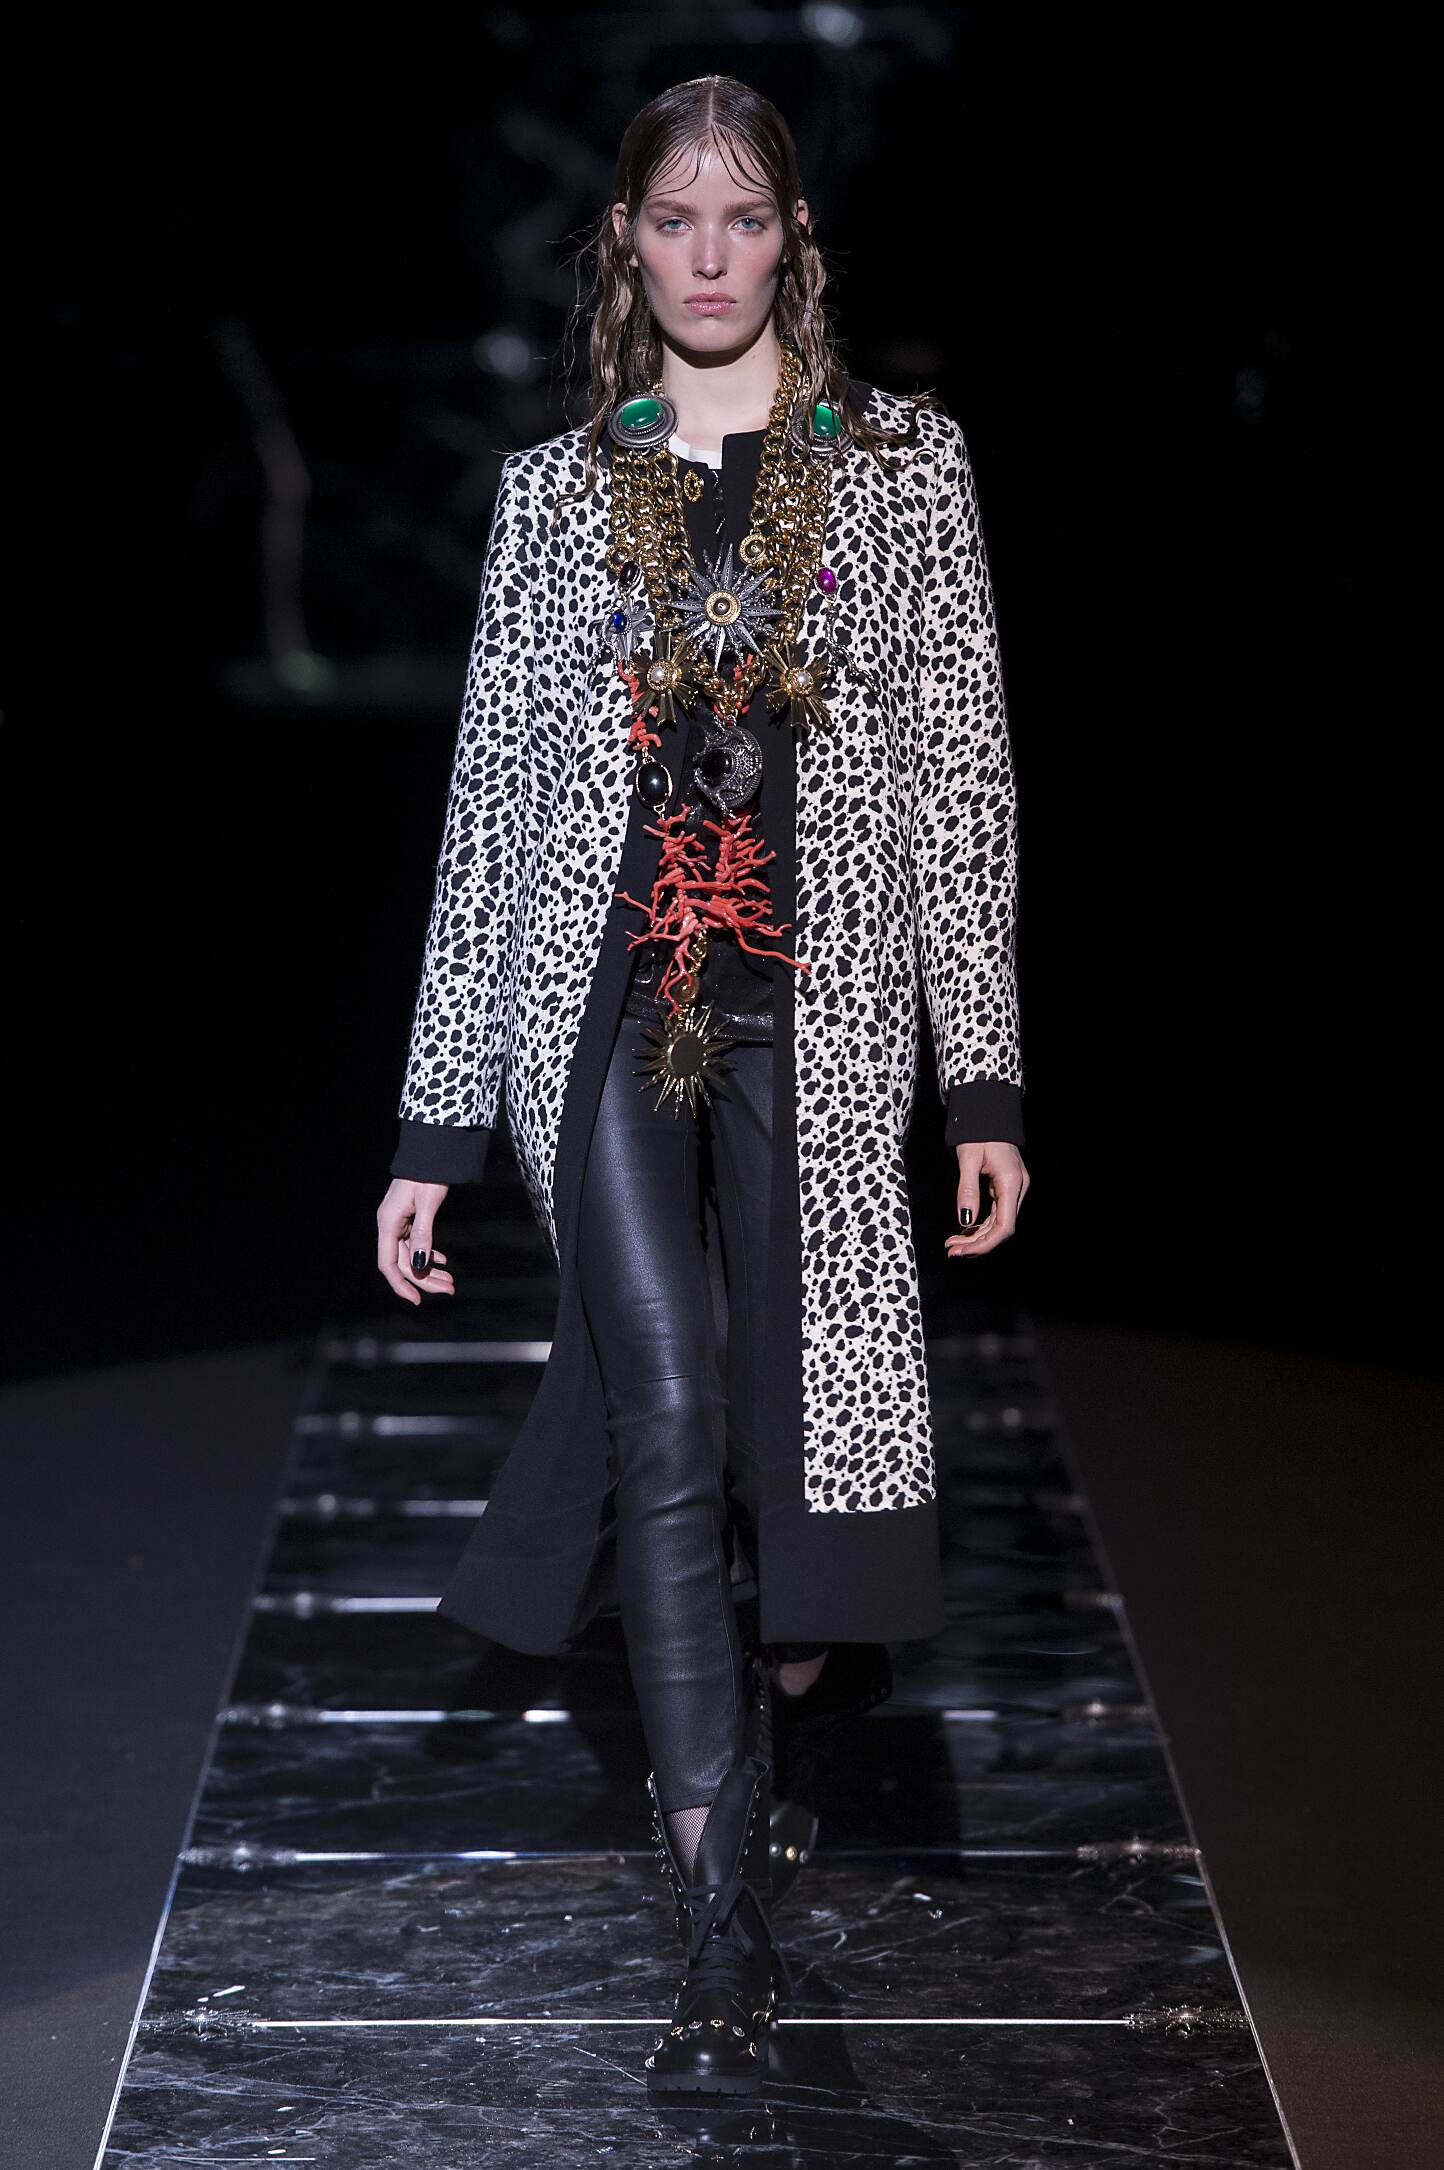 Runway Fausto Puglisi Fall Winter 2015 16 Women's Collection Milan Fashion Week